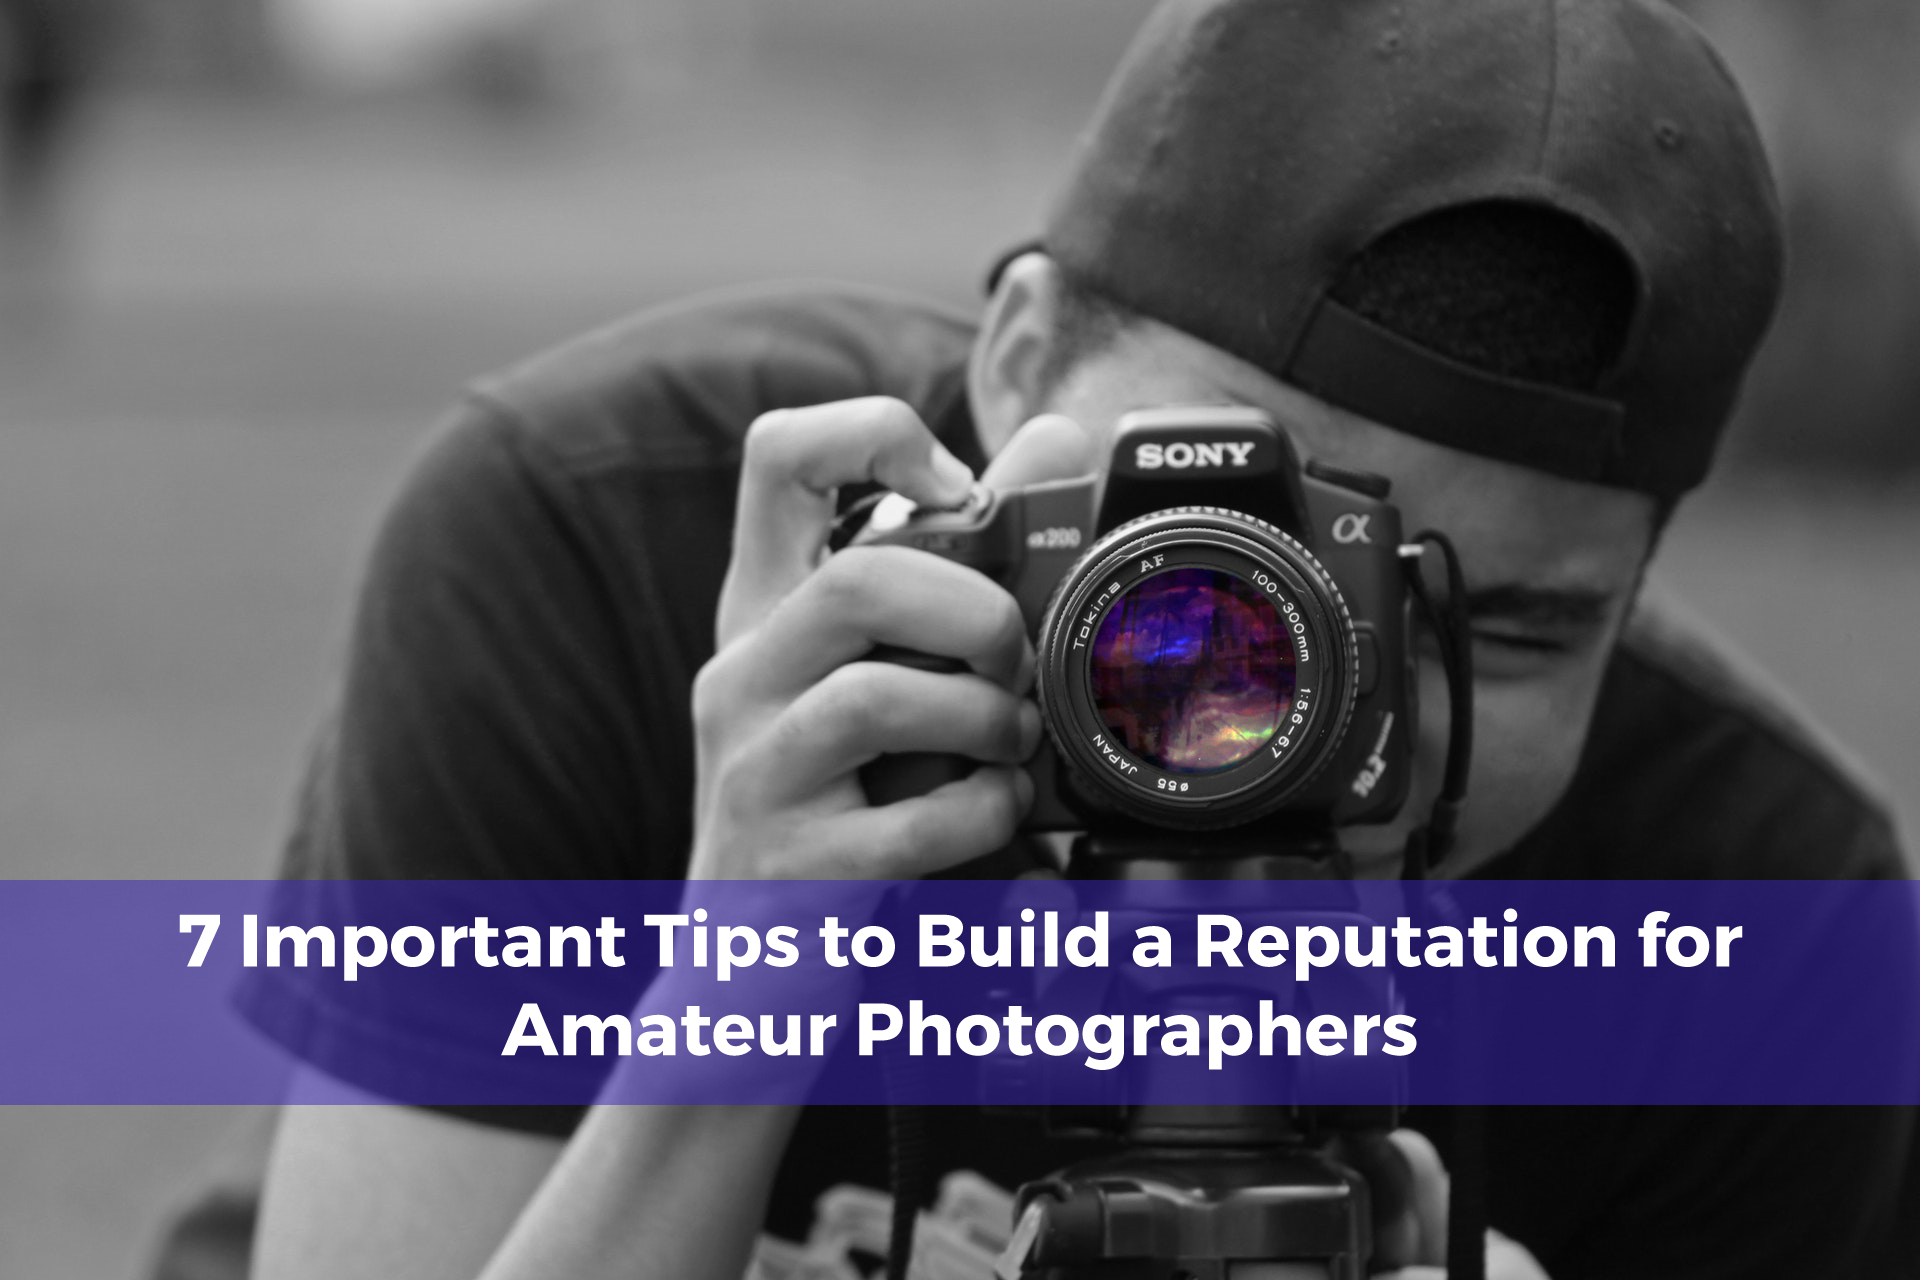 7 important tips to build a reputation for amateur photographers